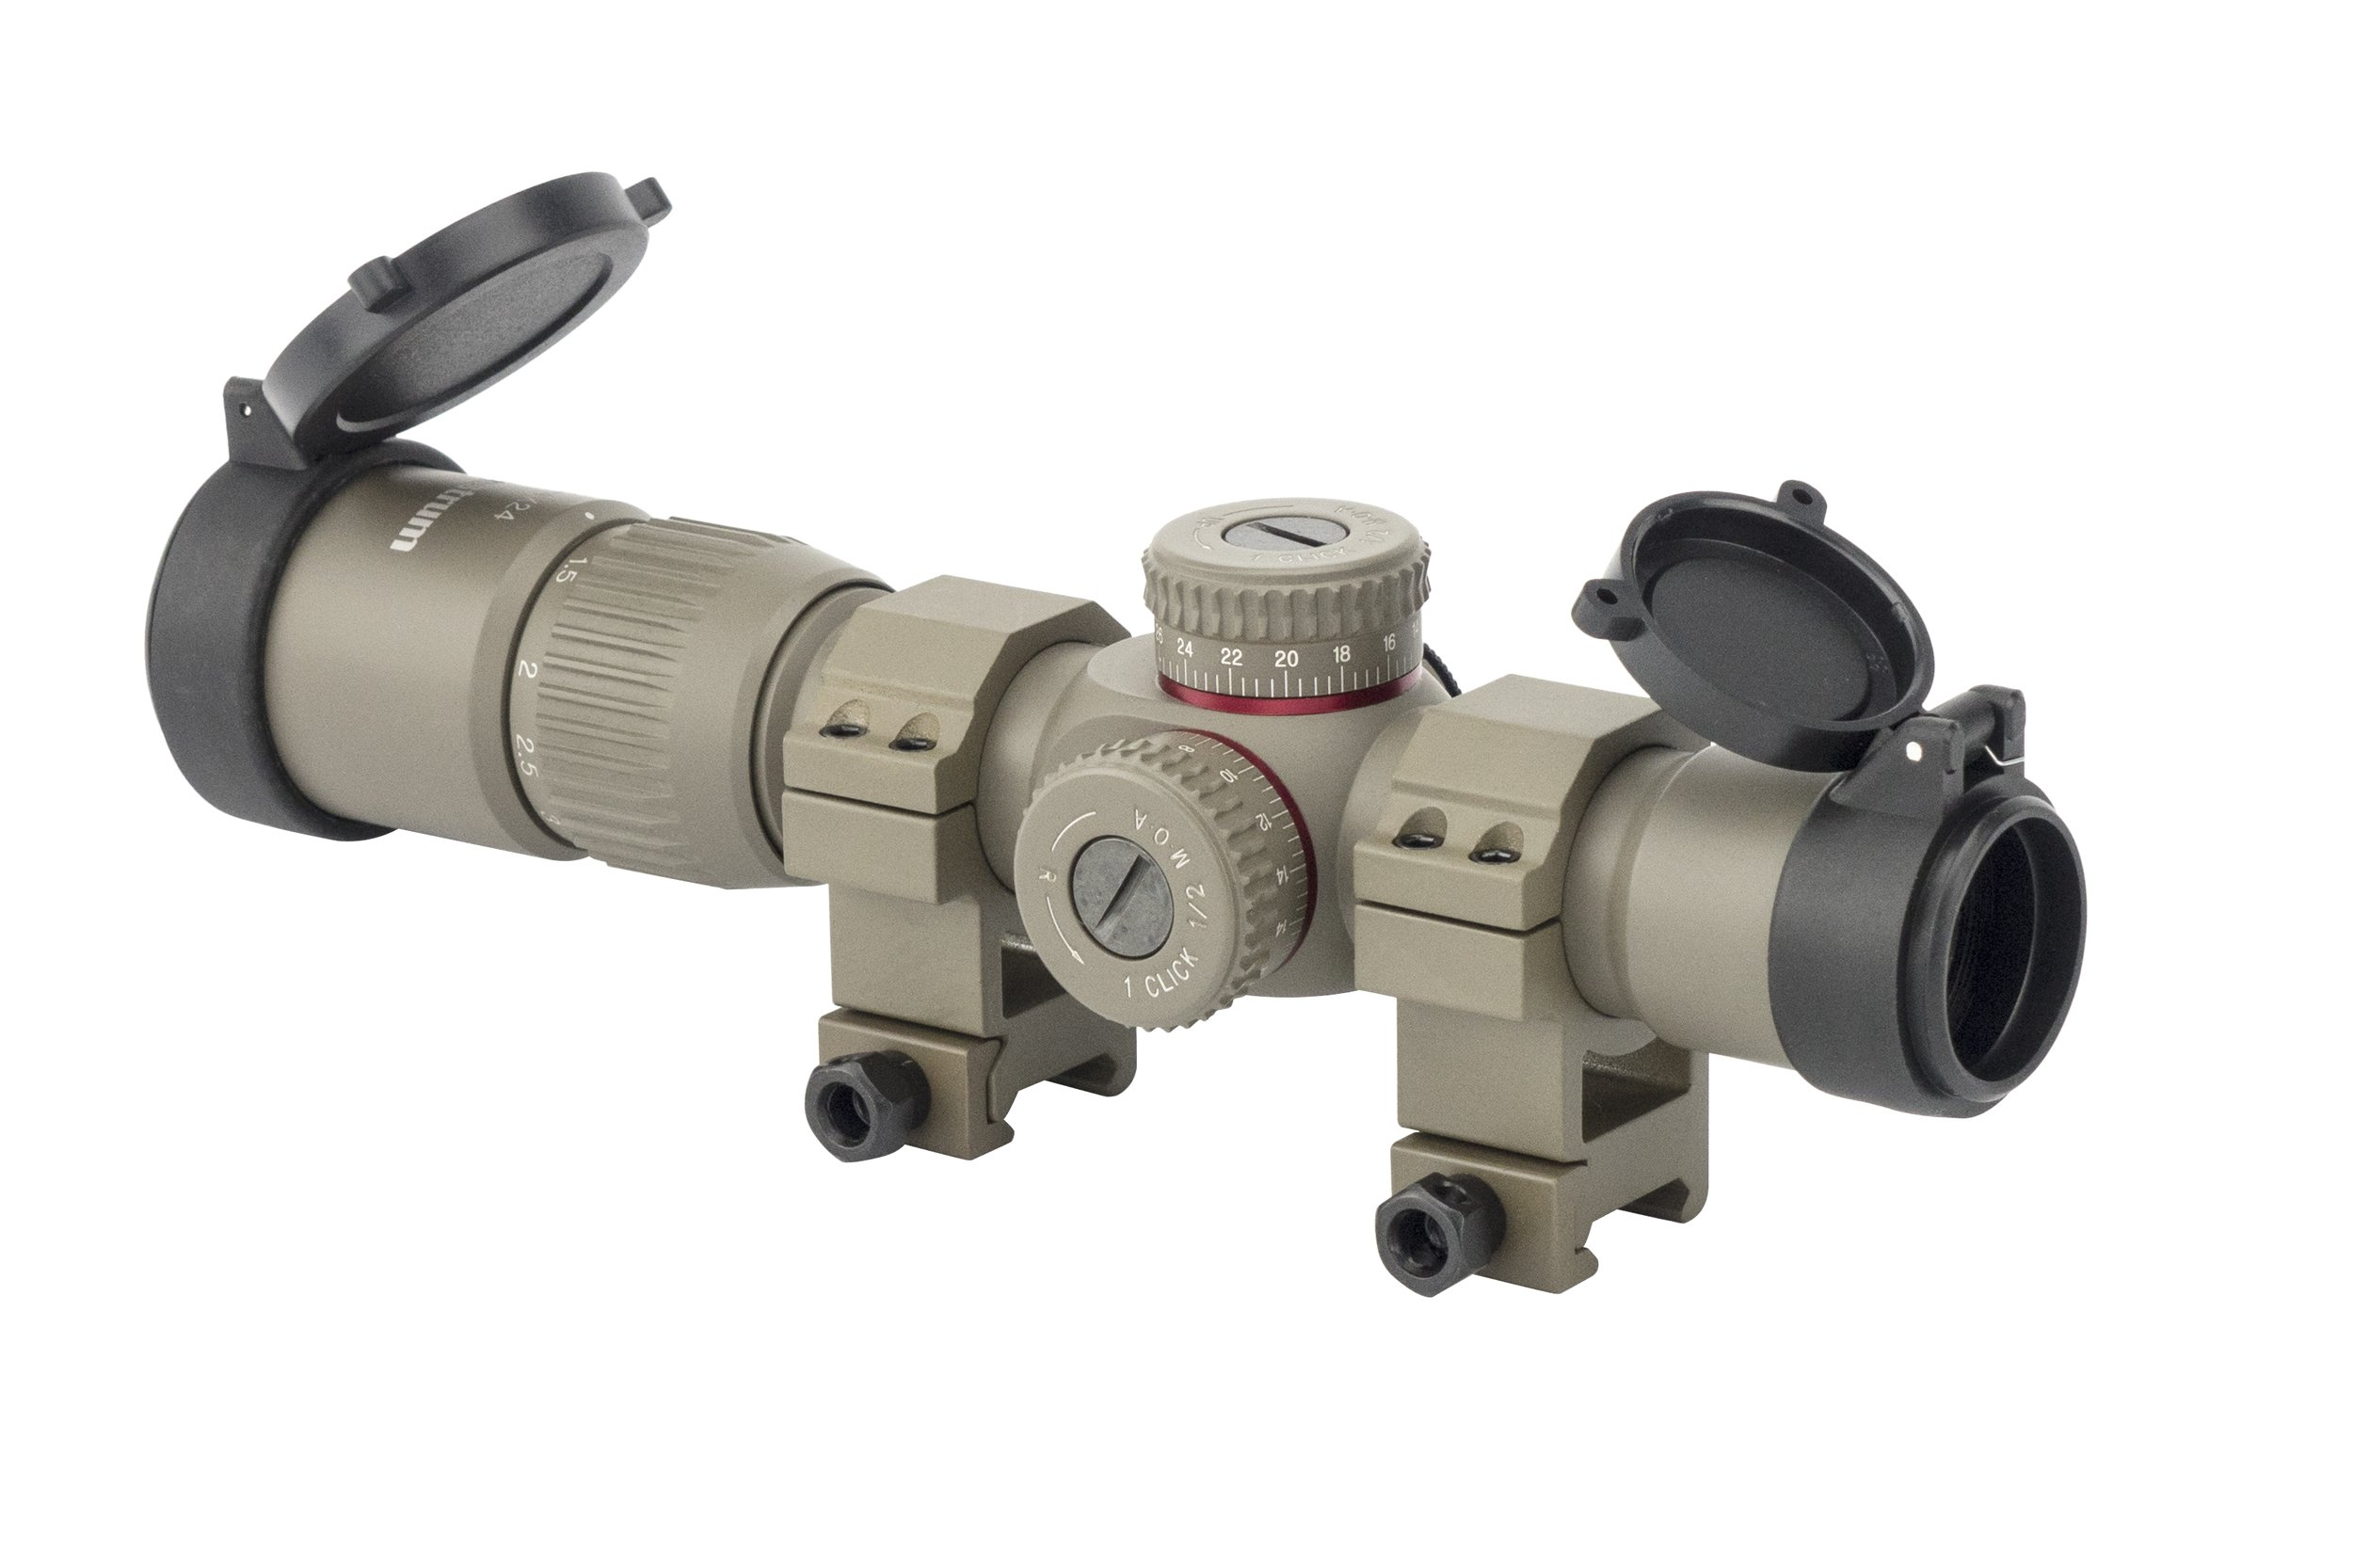 Monstrum G2 1-4x24 First Focal Plane FFP Rifle Scope with Illuminated BDC Reticle | Flat Dark Earth/Flat Dark Earth Rings by Monstrum